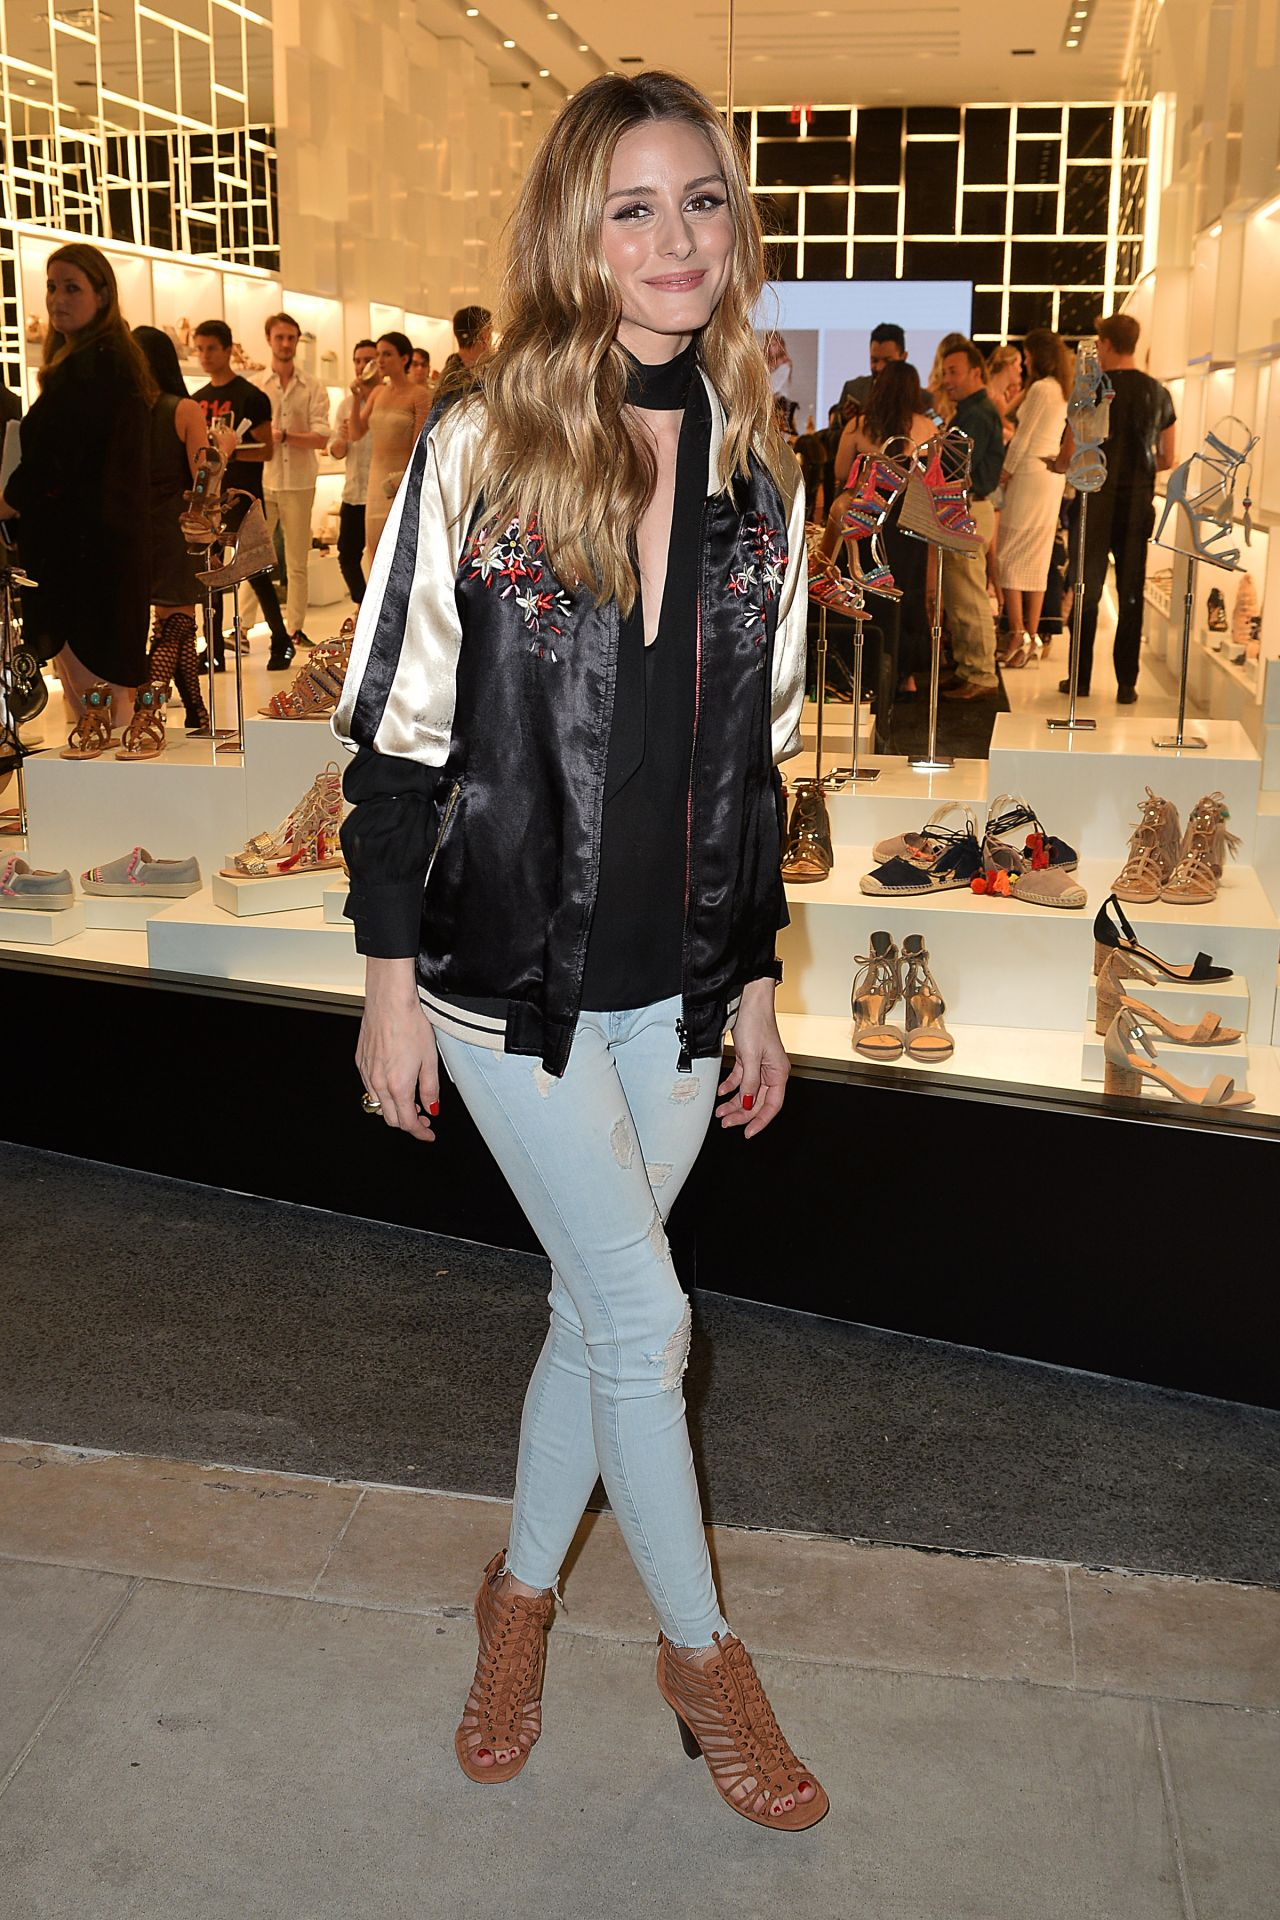 Party Chic Olivia Palermo Casual Chic Outfit 314beverly Shutz Shoes Party